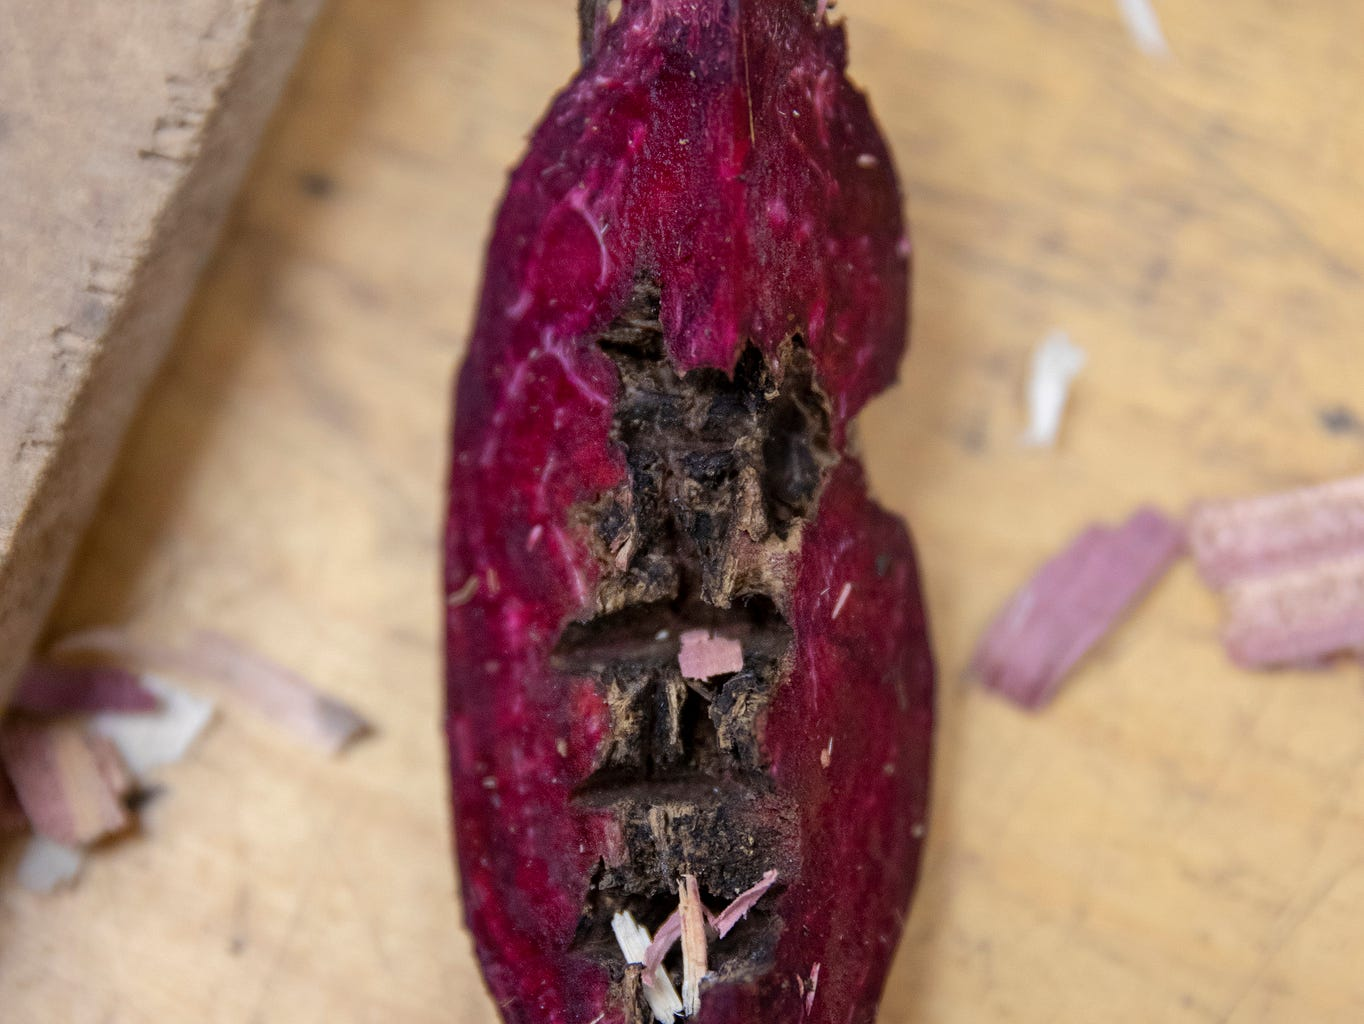 A beet undergoing inspection at the UW Carrot and Beet Lab shows evidence of infection by the fungus Rhizoctonia.